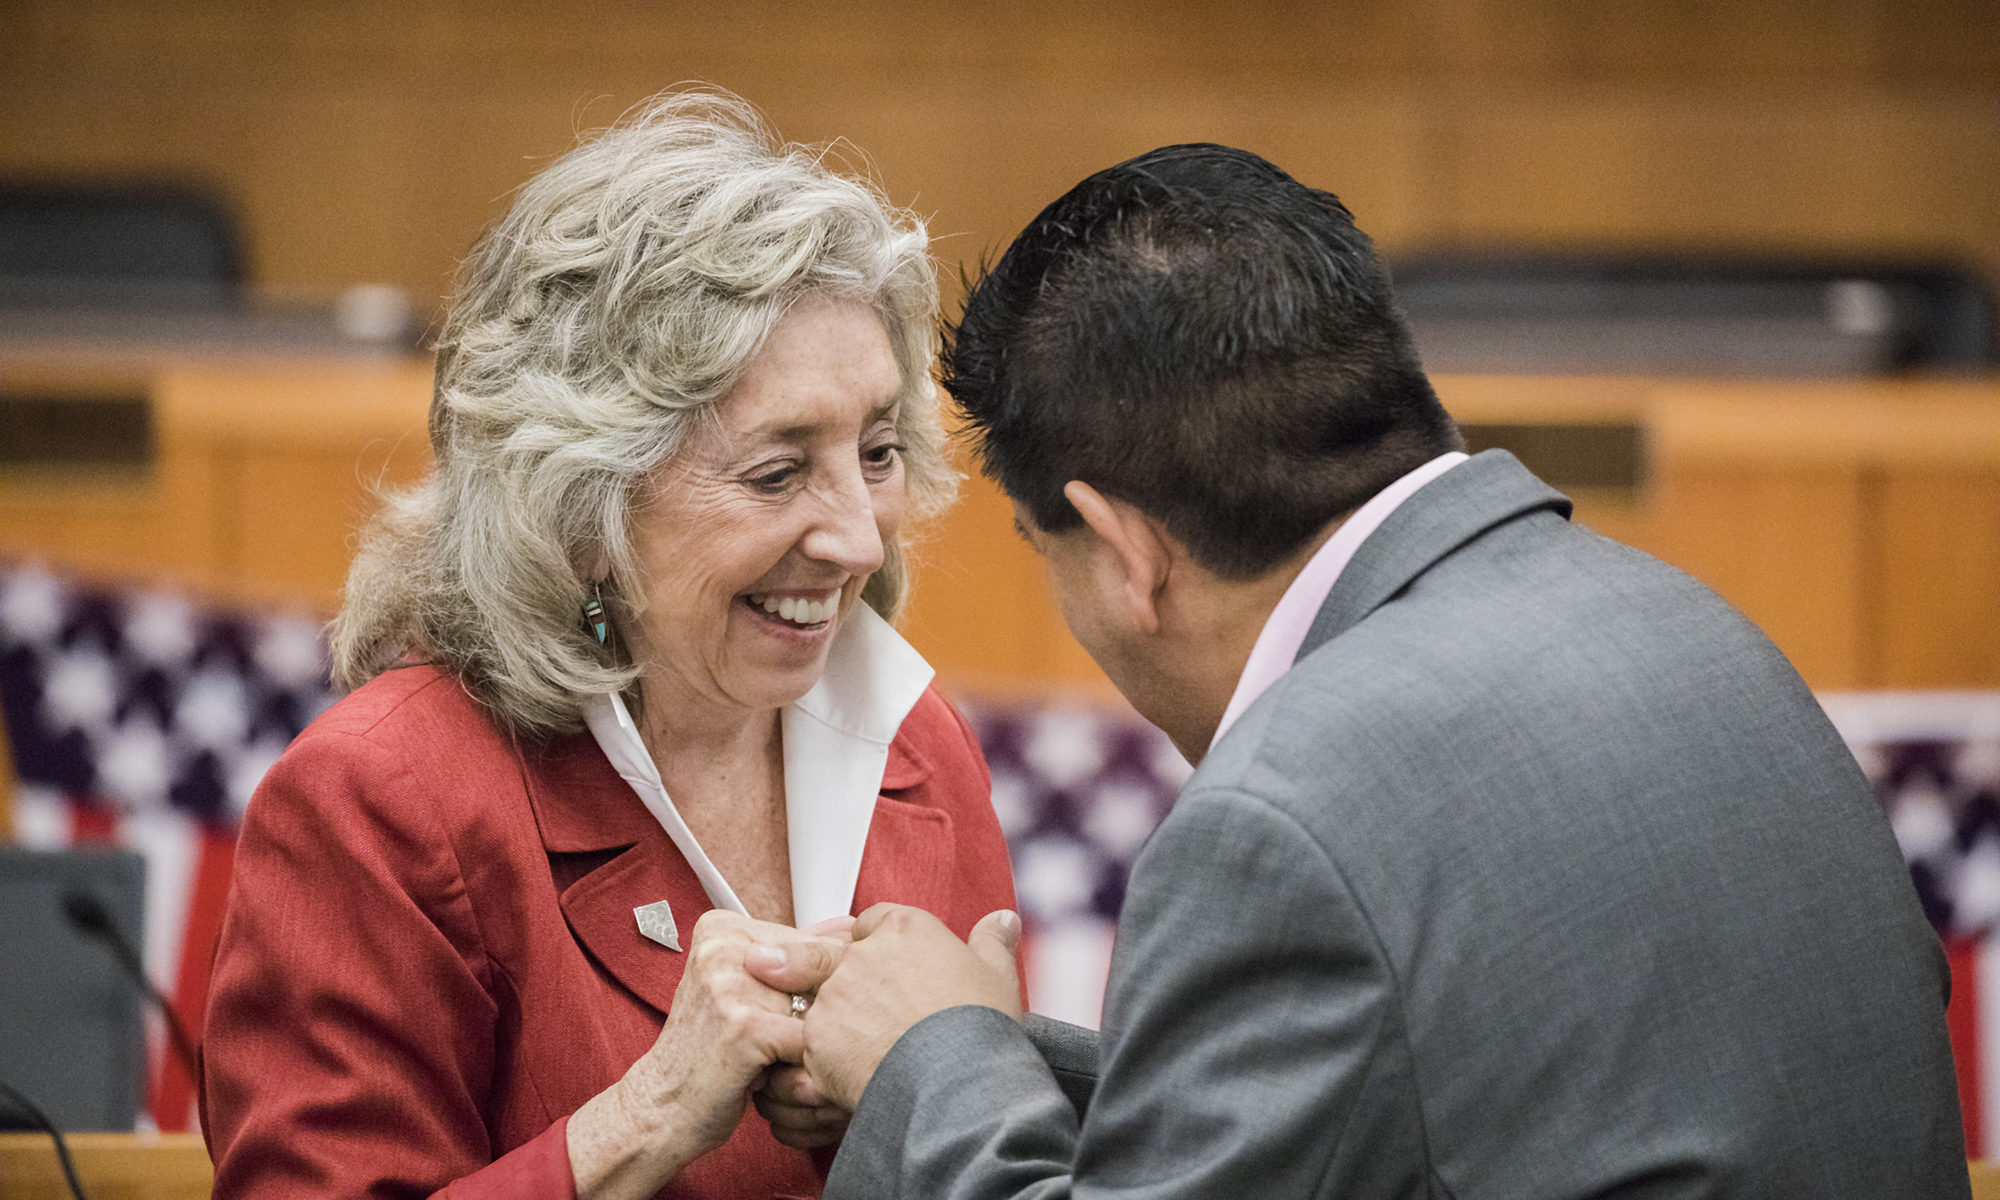 Titus bows out of U.S. Senate race, announces she will run for re-election  in 1st Congressional District - The Nevada Independent